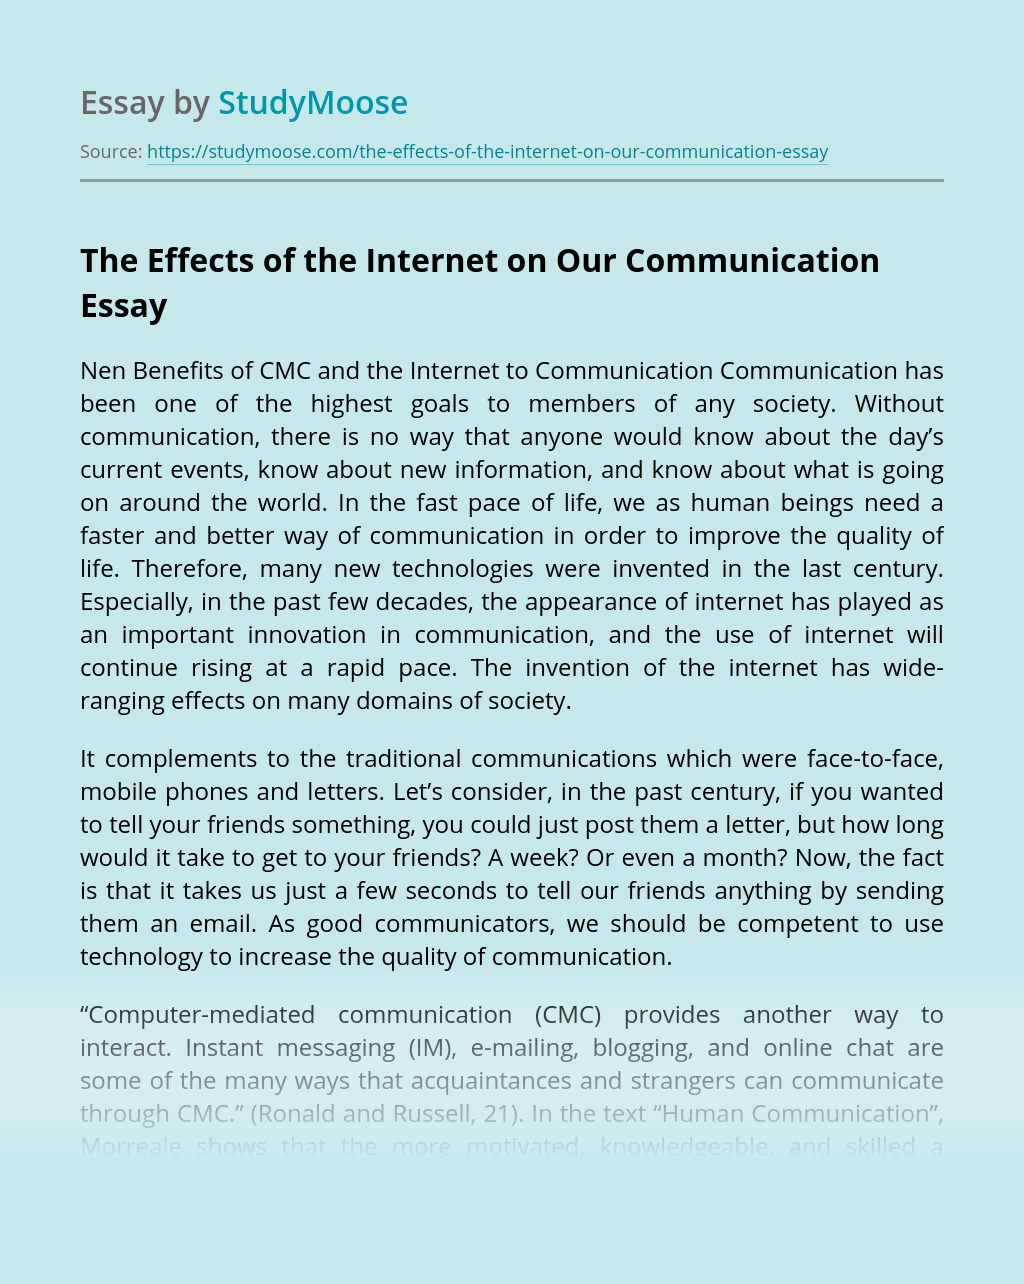 The Effects of the Internet on Our Communication